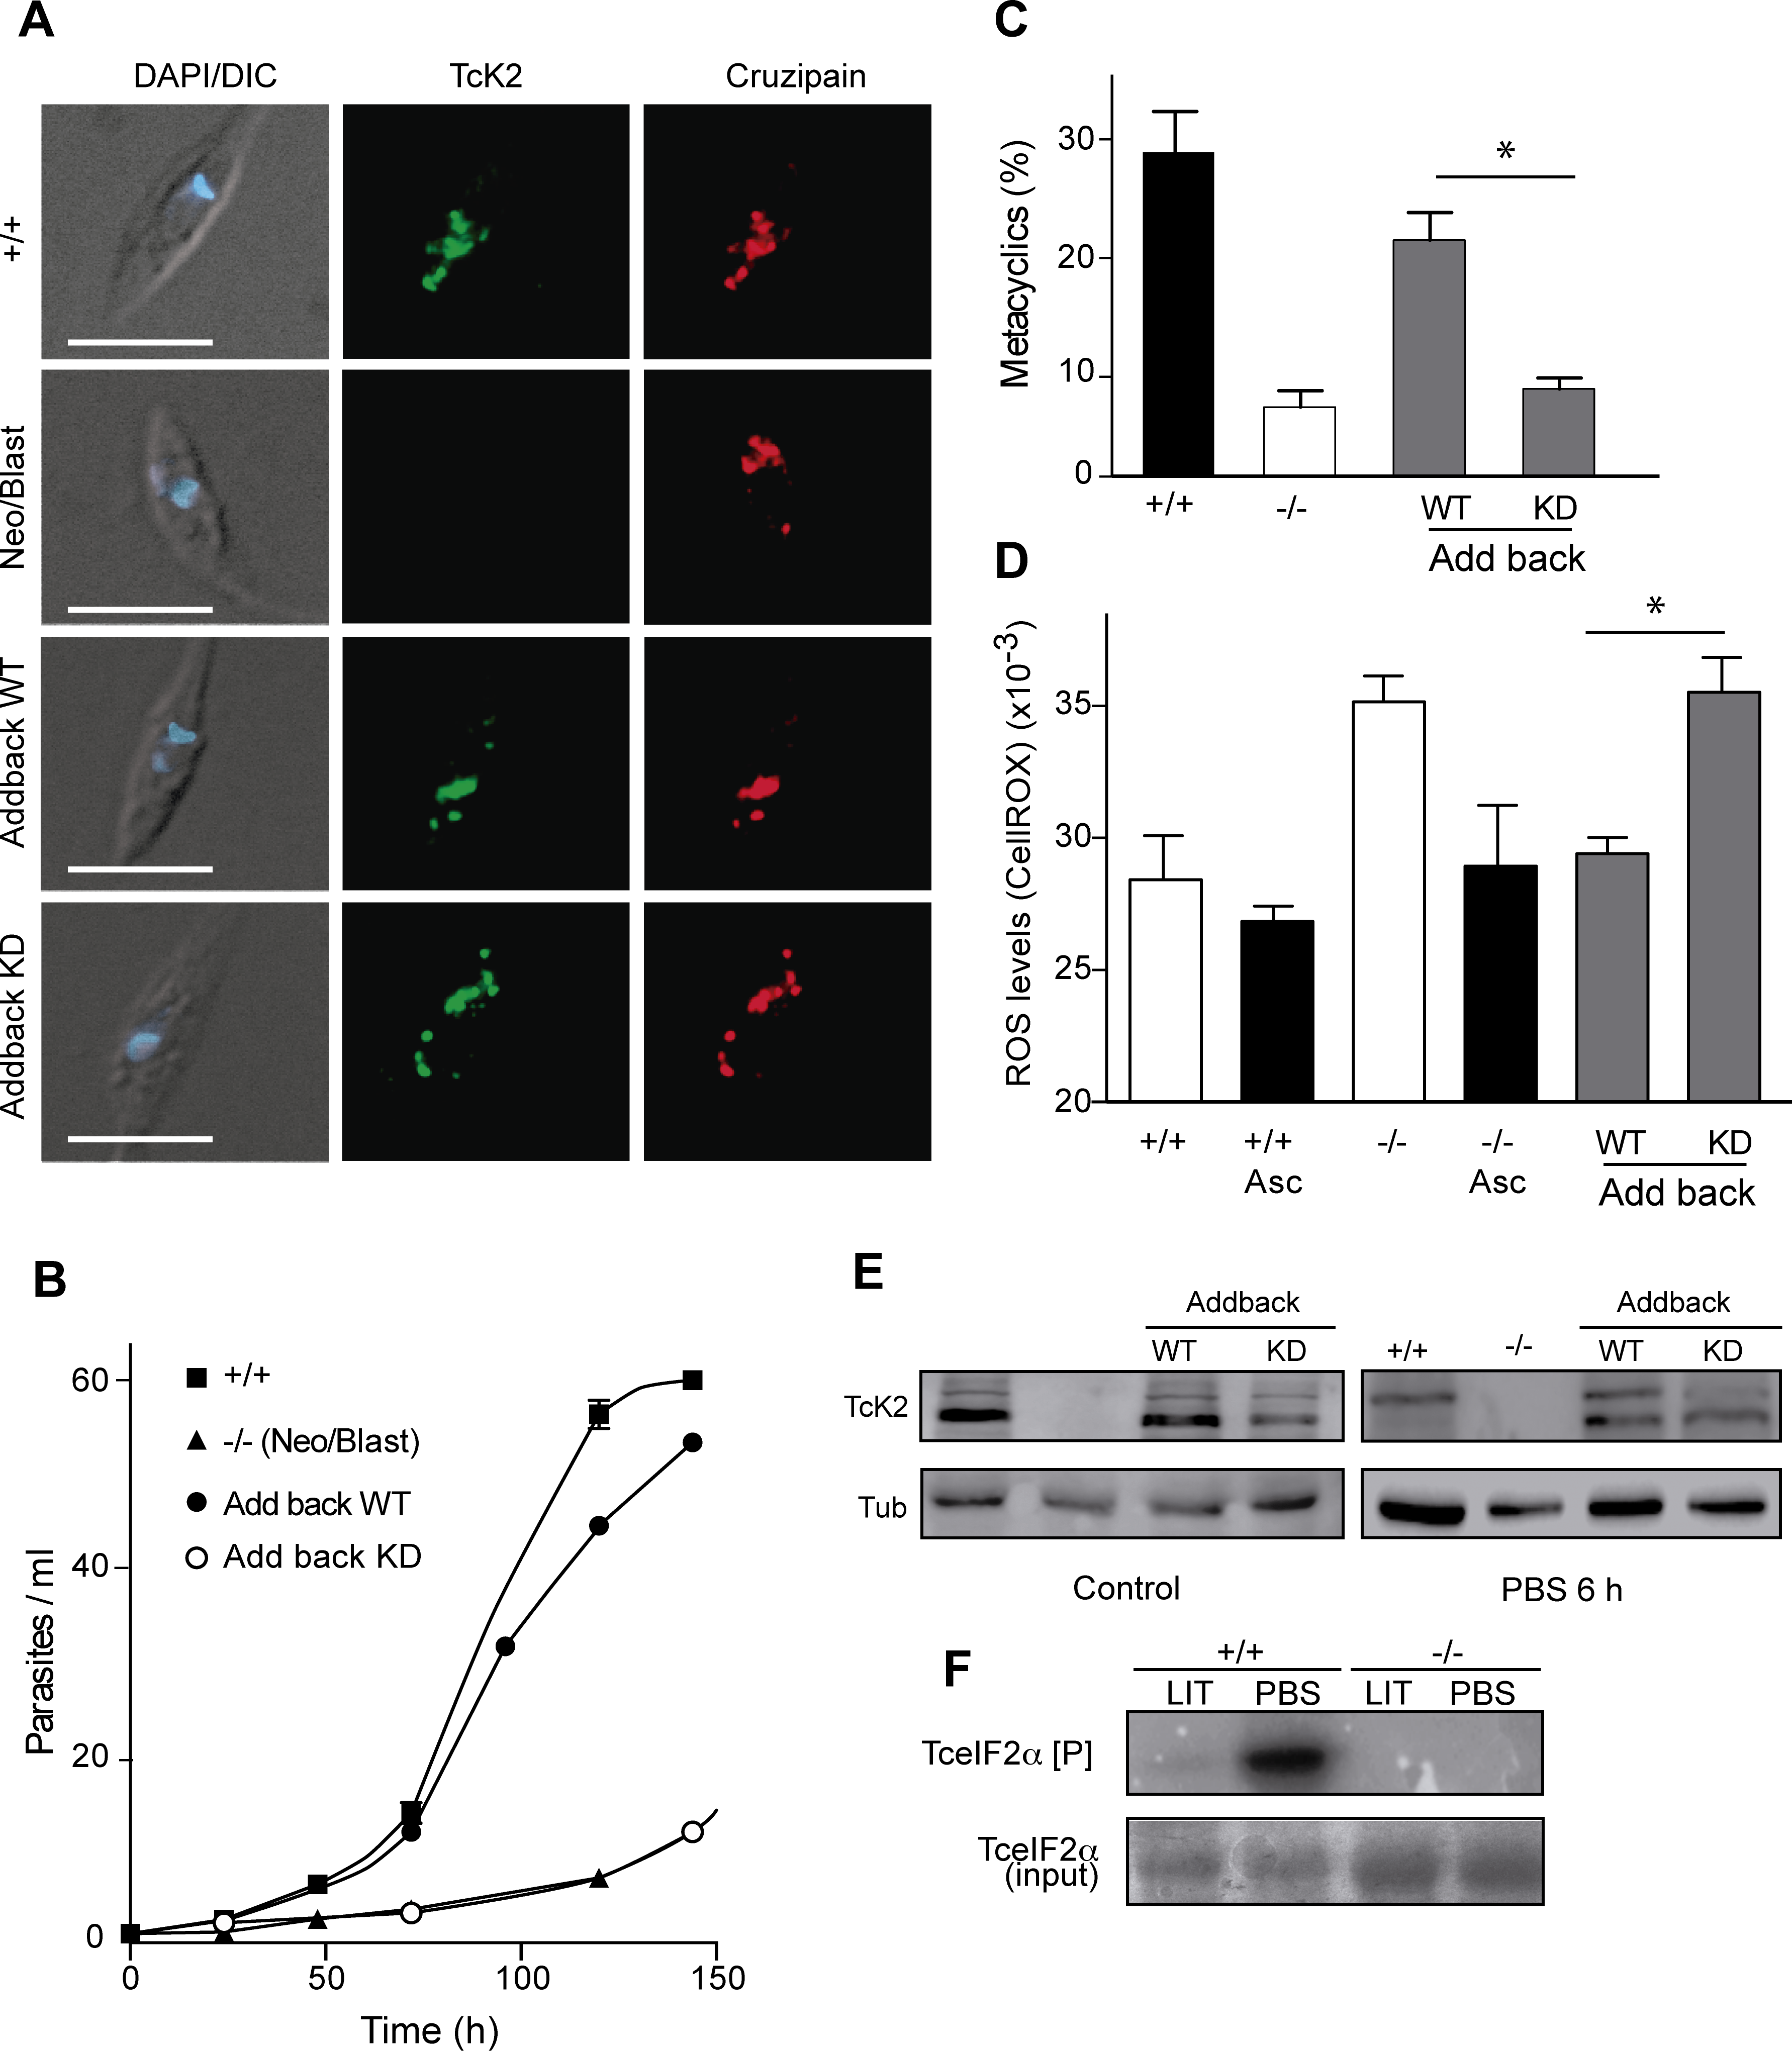 Wild type, but not the kinase dead TcK2 restores the knockout phenotypes.